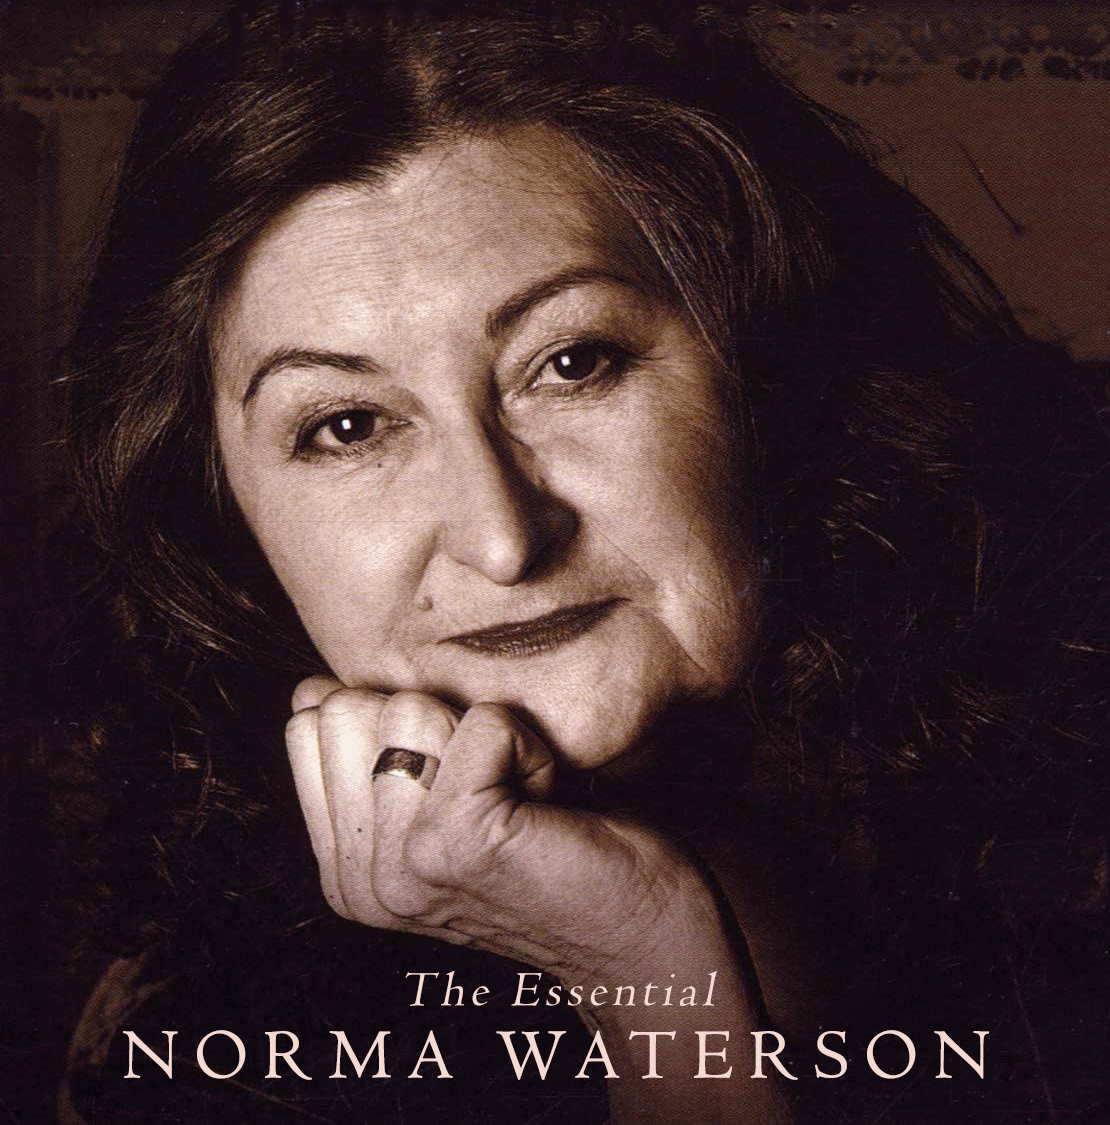 The Essential Norma Waterson